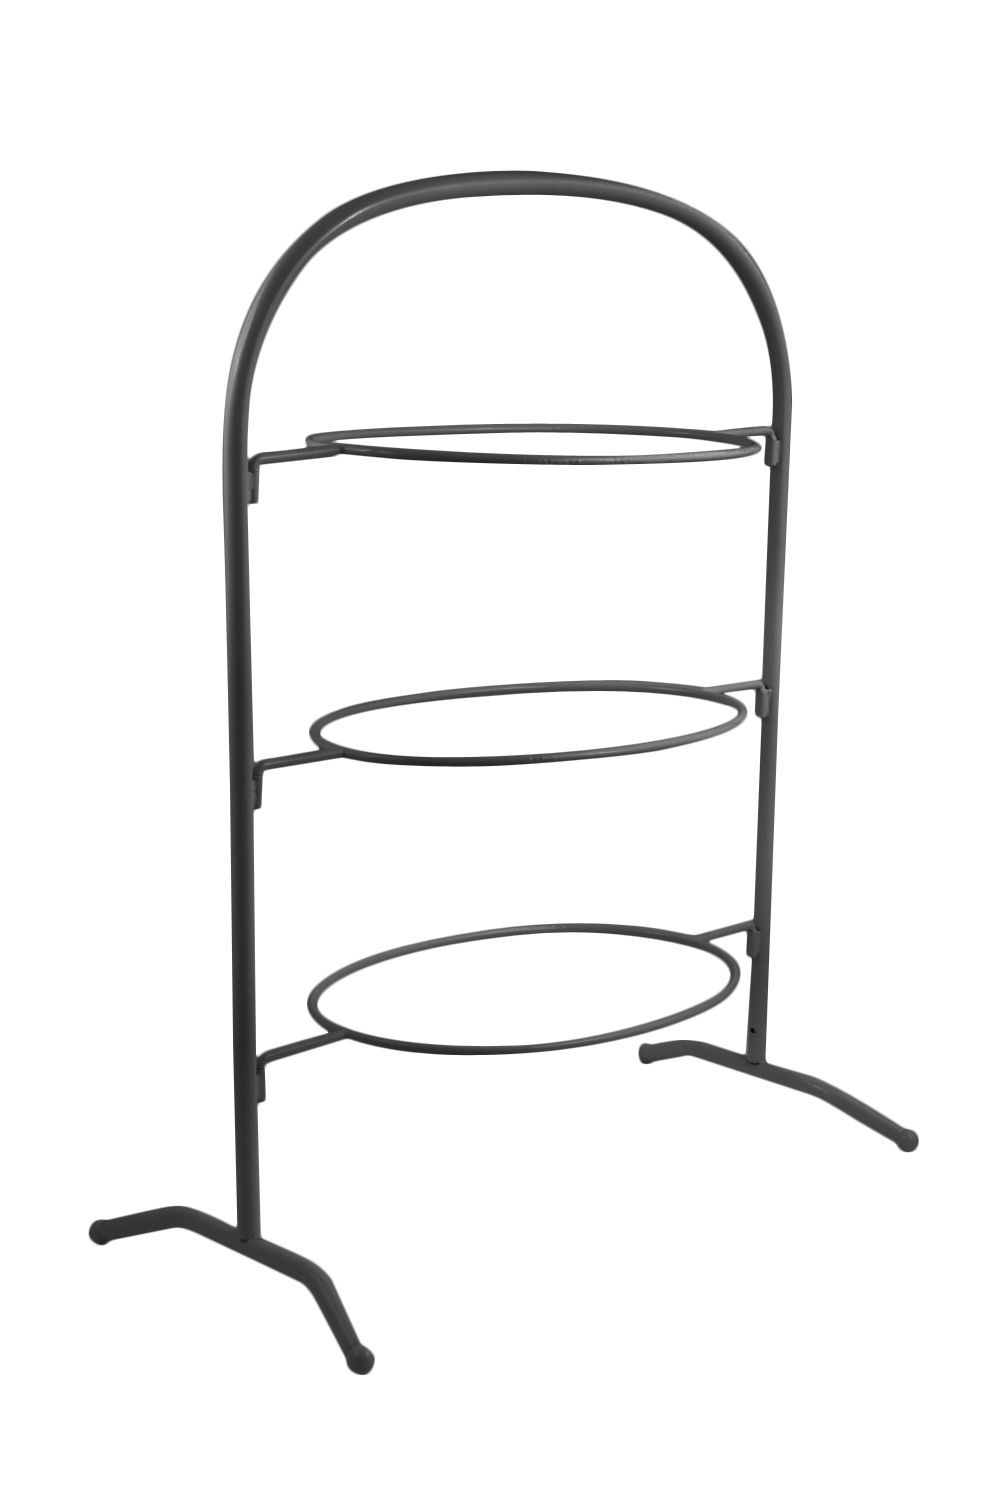 Bon Chef 7006 Wire Display Stand for 2090, Sandstone 30